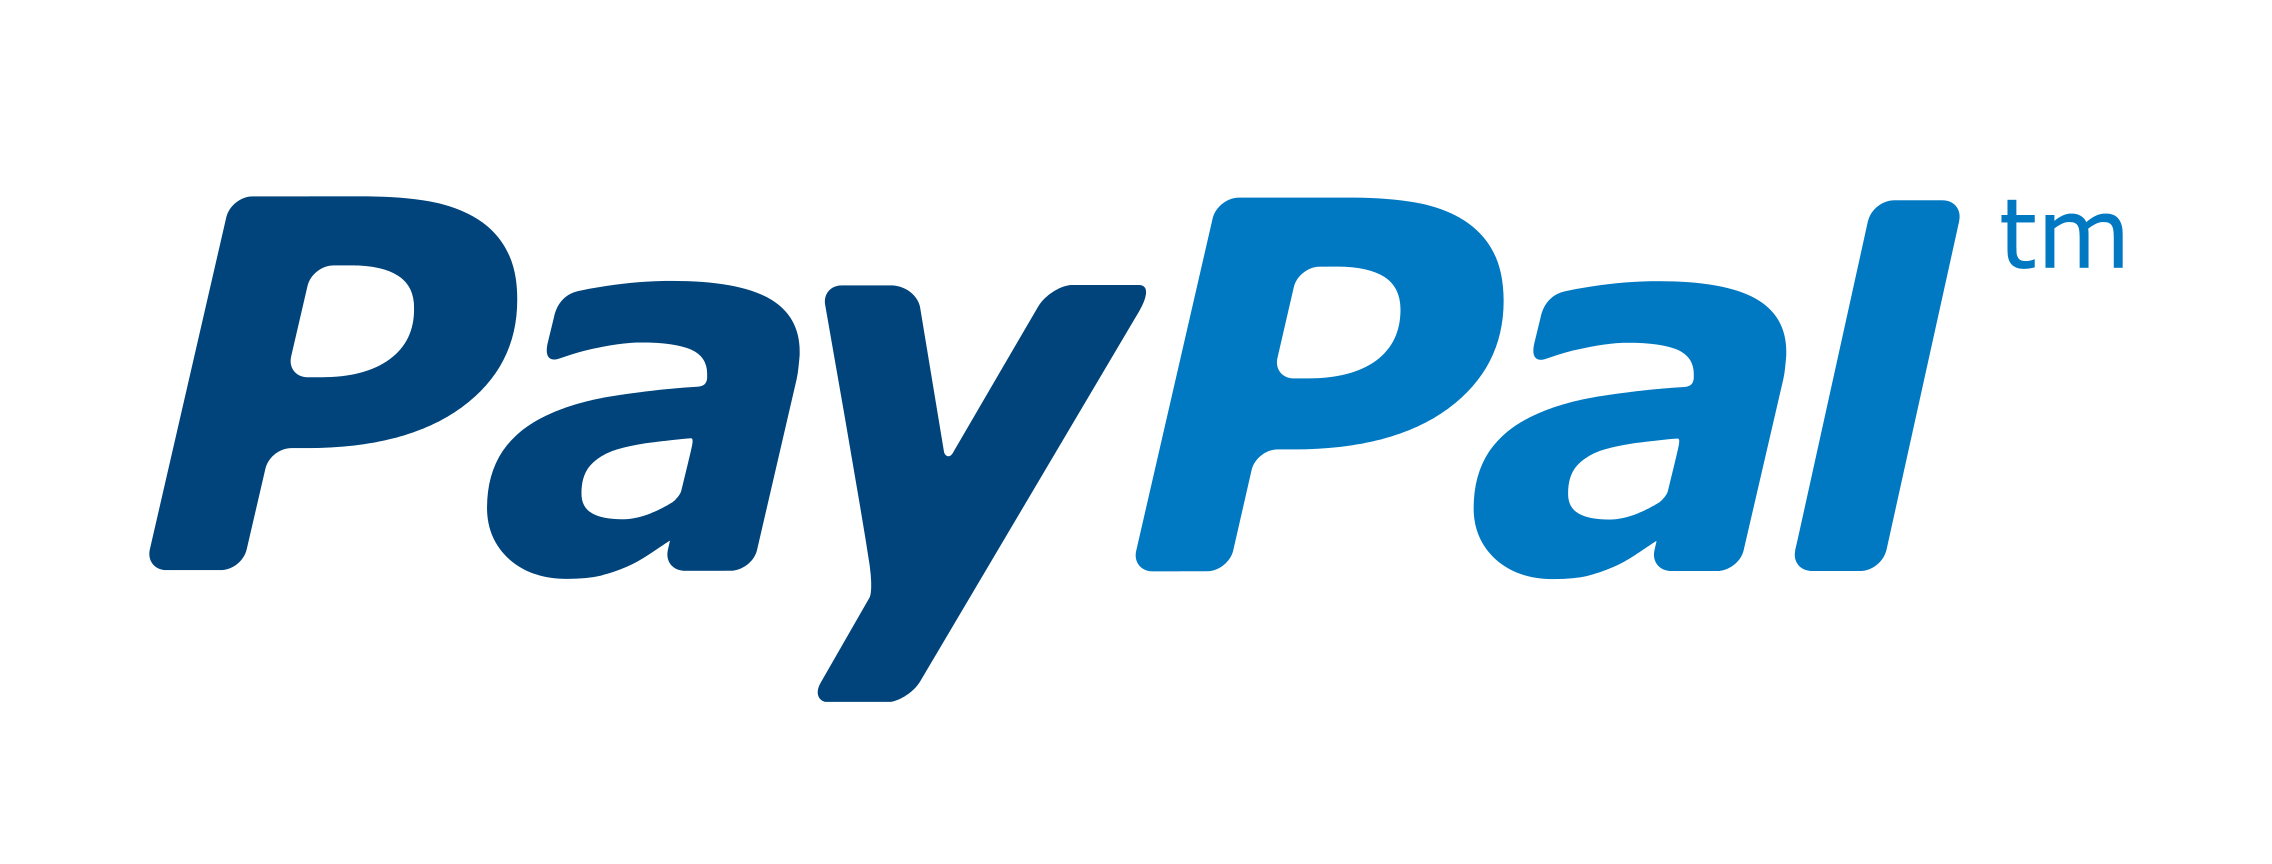 Paypal png logo. Transparent images all